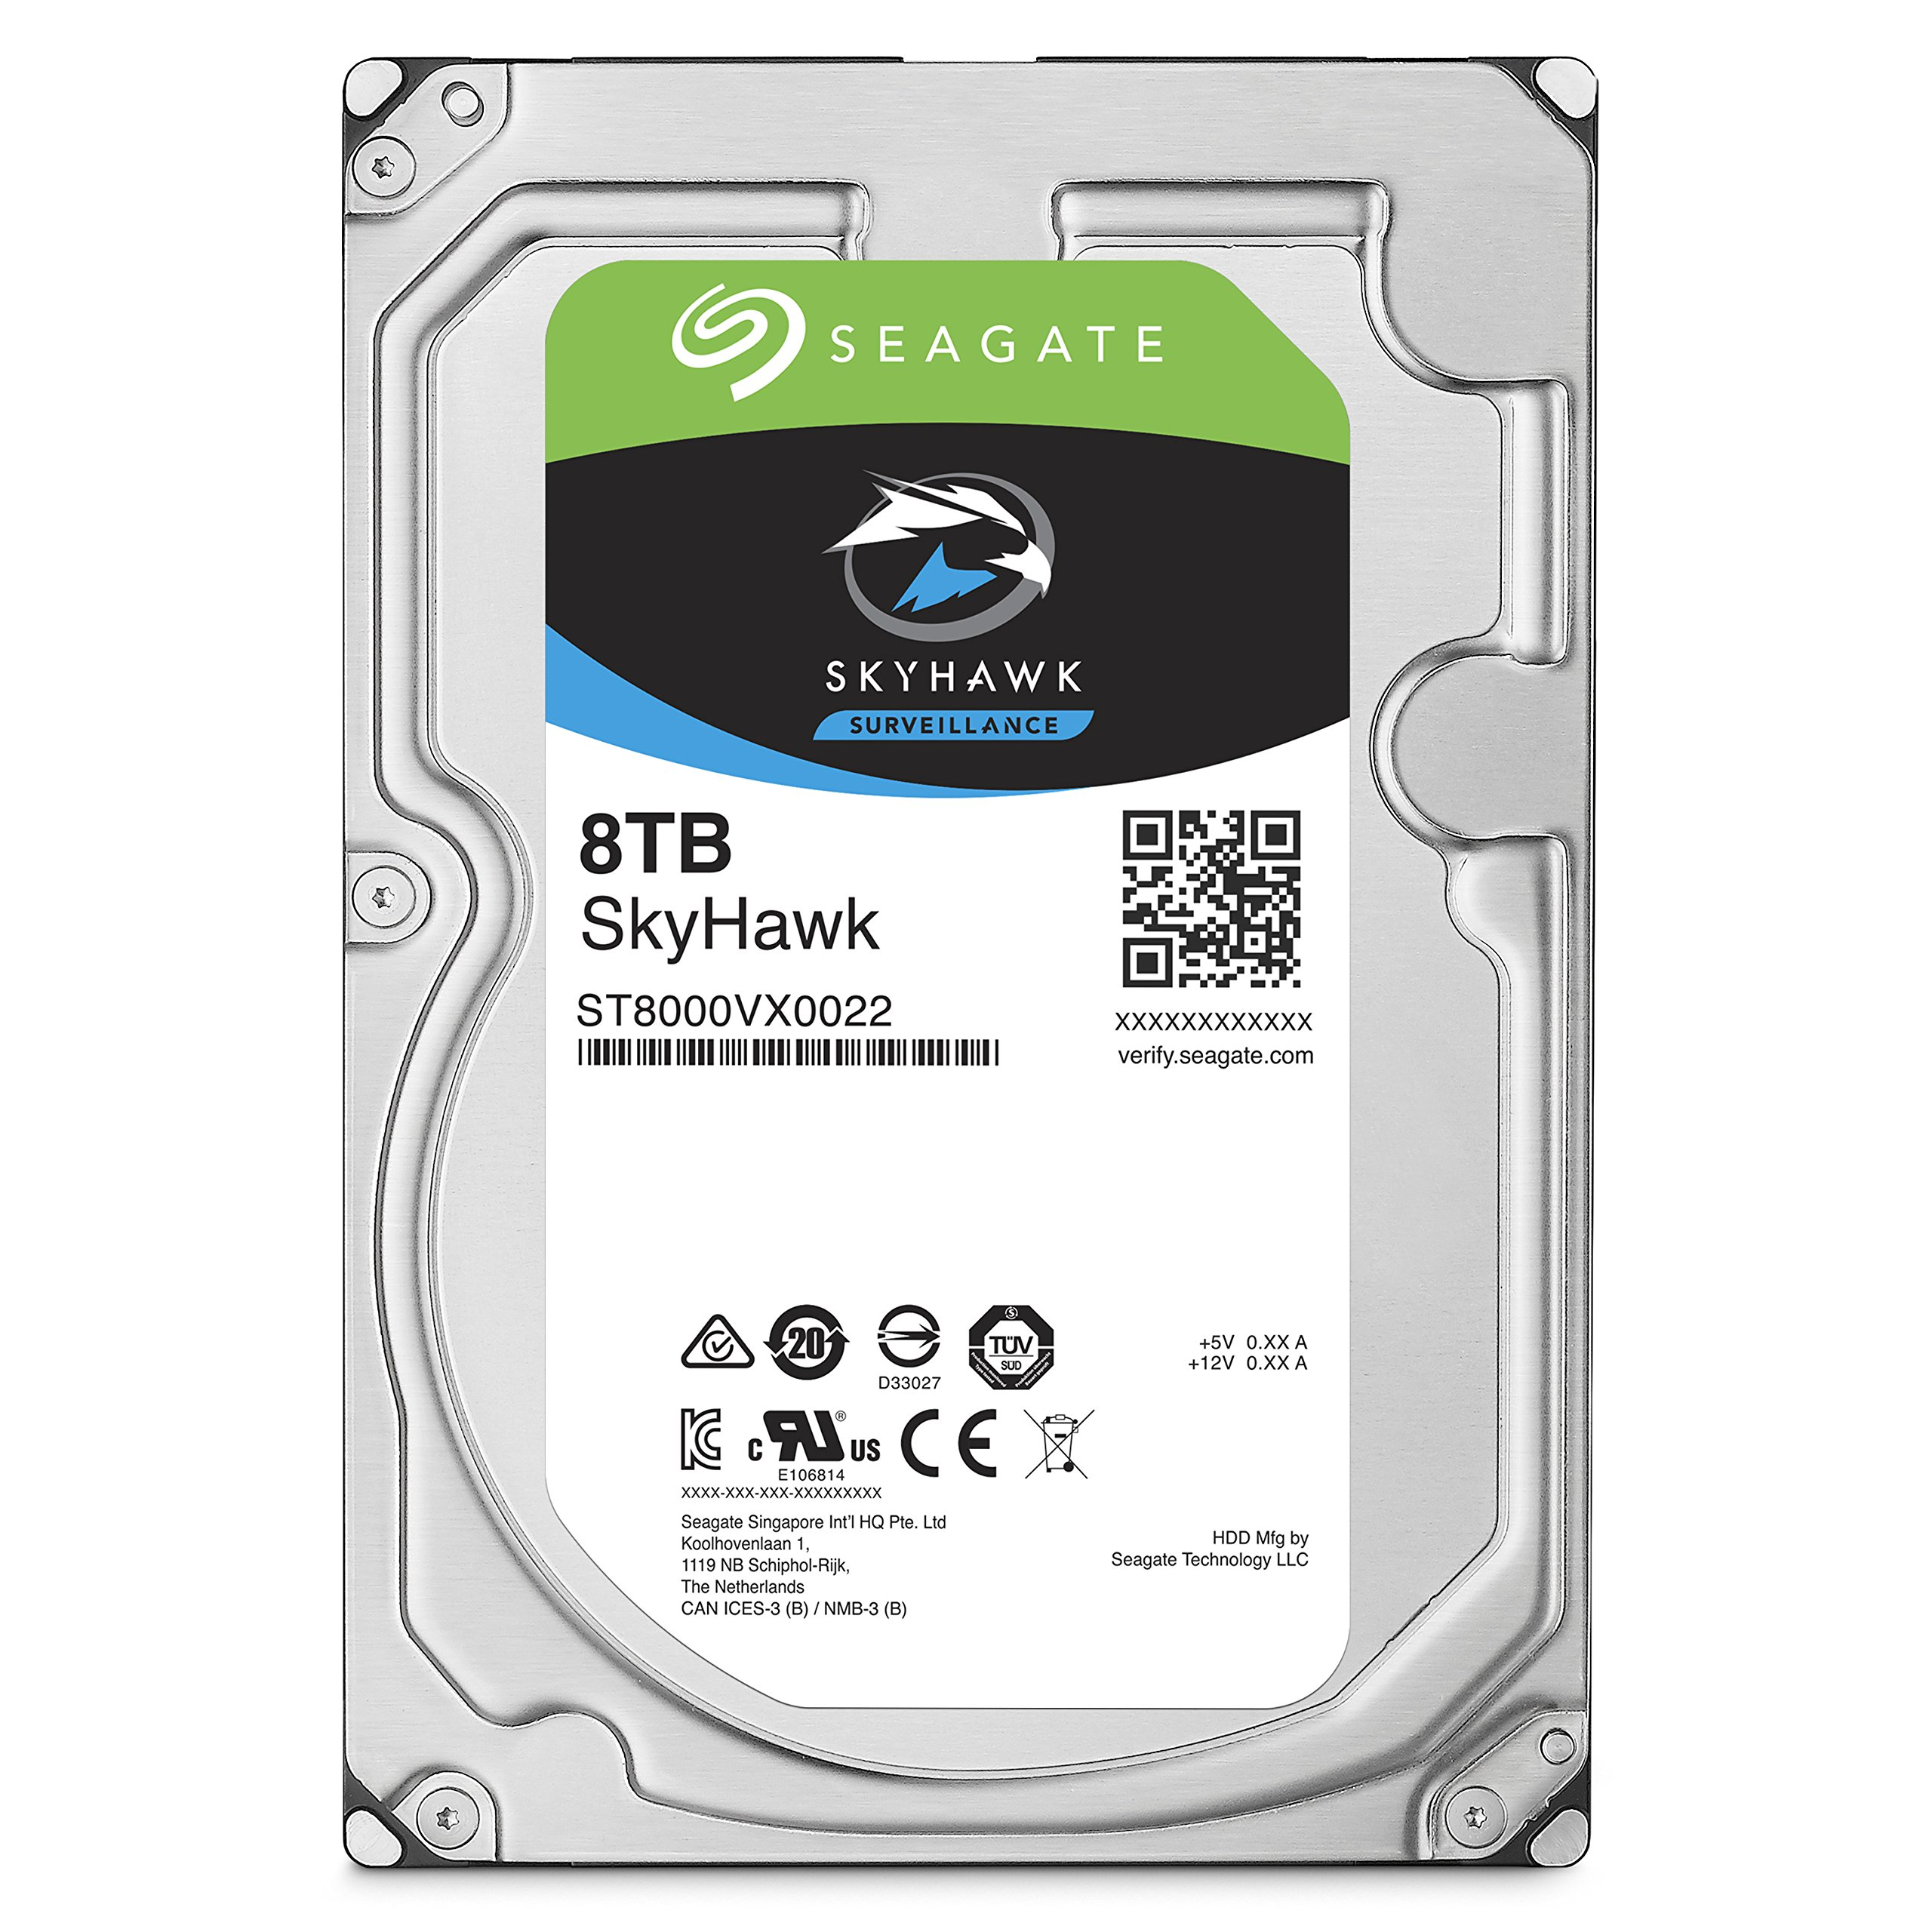 Seagate Skyhawk 8TB Surveillance Internal Hard Drive HDD – 3.5 Inch SATA 6GB/s 256MB Cache for DVR NVR Security Camera System with Drive Health Management – Frustration Free Packaging (T8000VX0022)